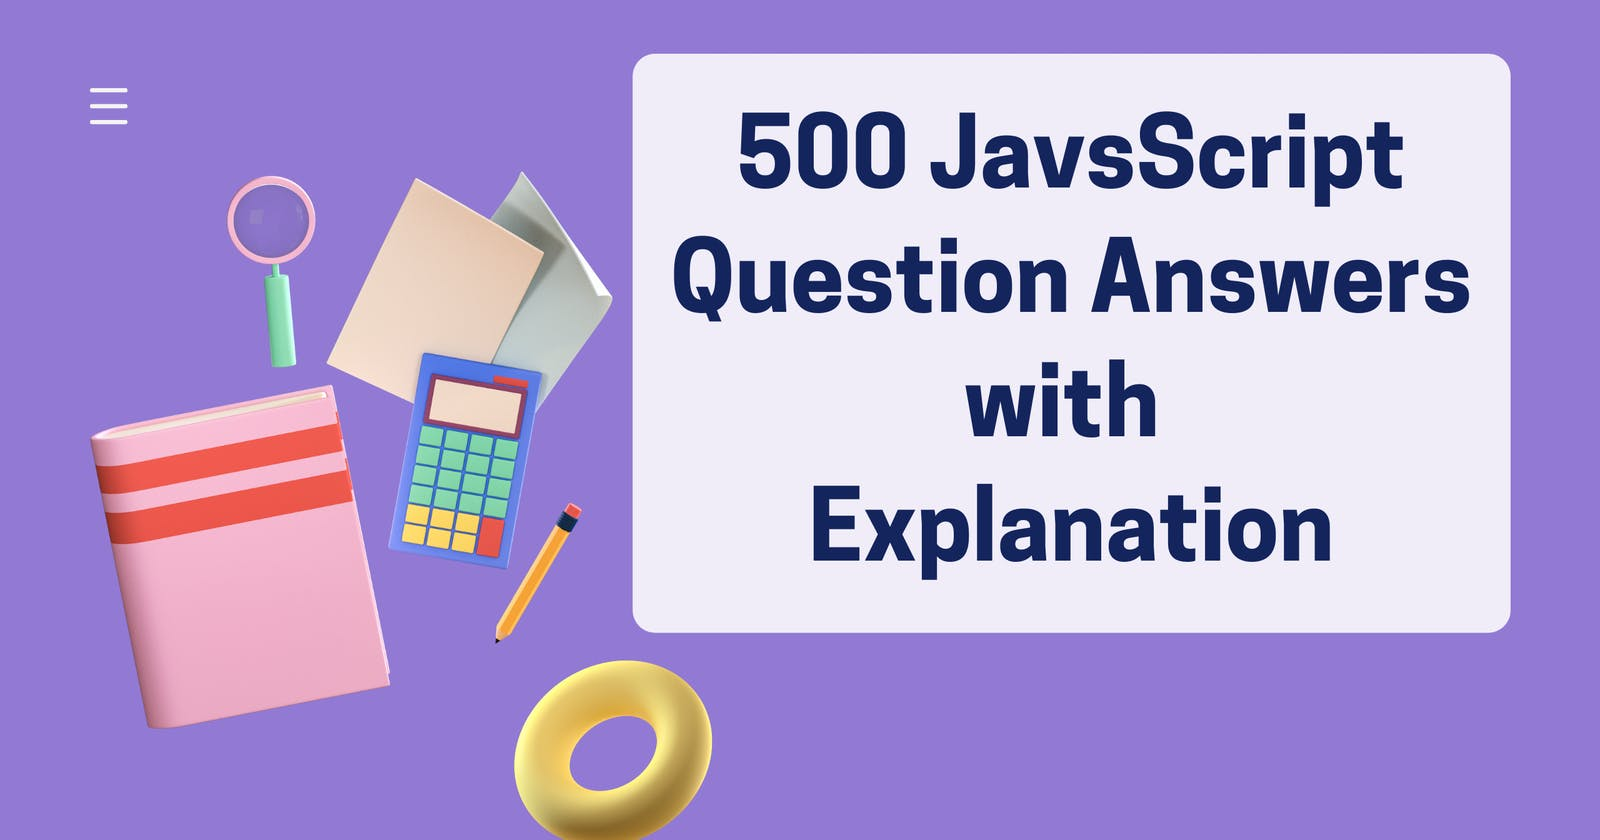 Part-4 : 500 JavaScript Important Questions with Answers and Explanation